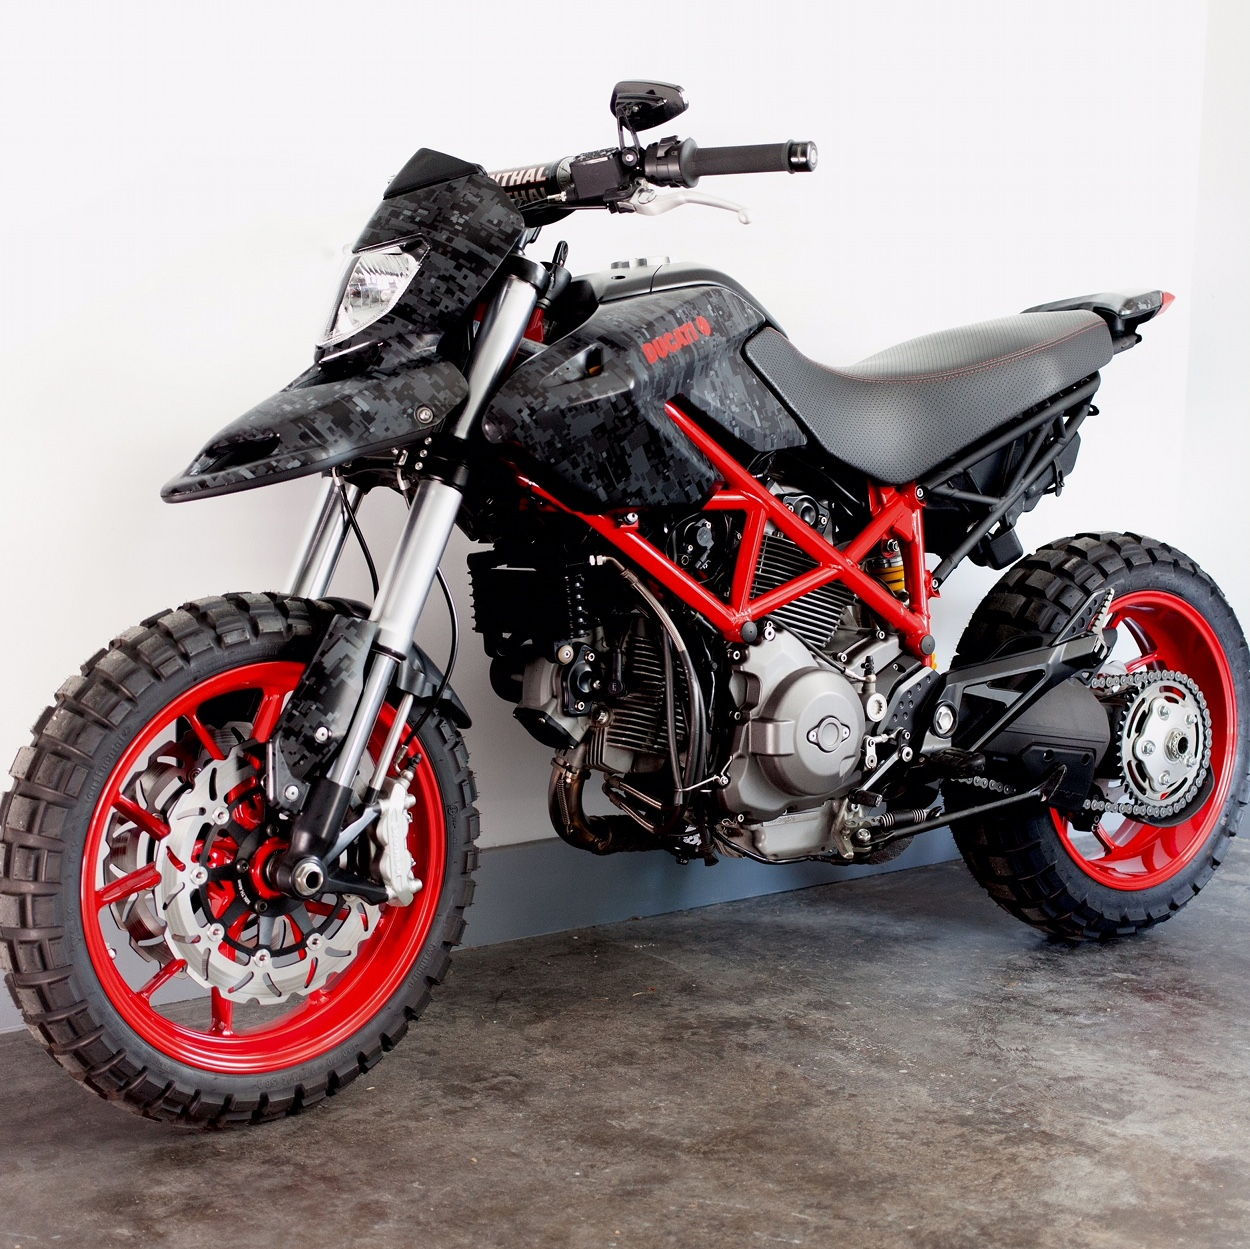 custom ducati hypermotard 796 by jesse spade bikebound. Black Bedroom Furniture Sets. Home Design Ideas